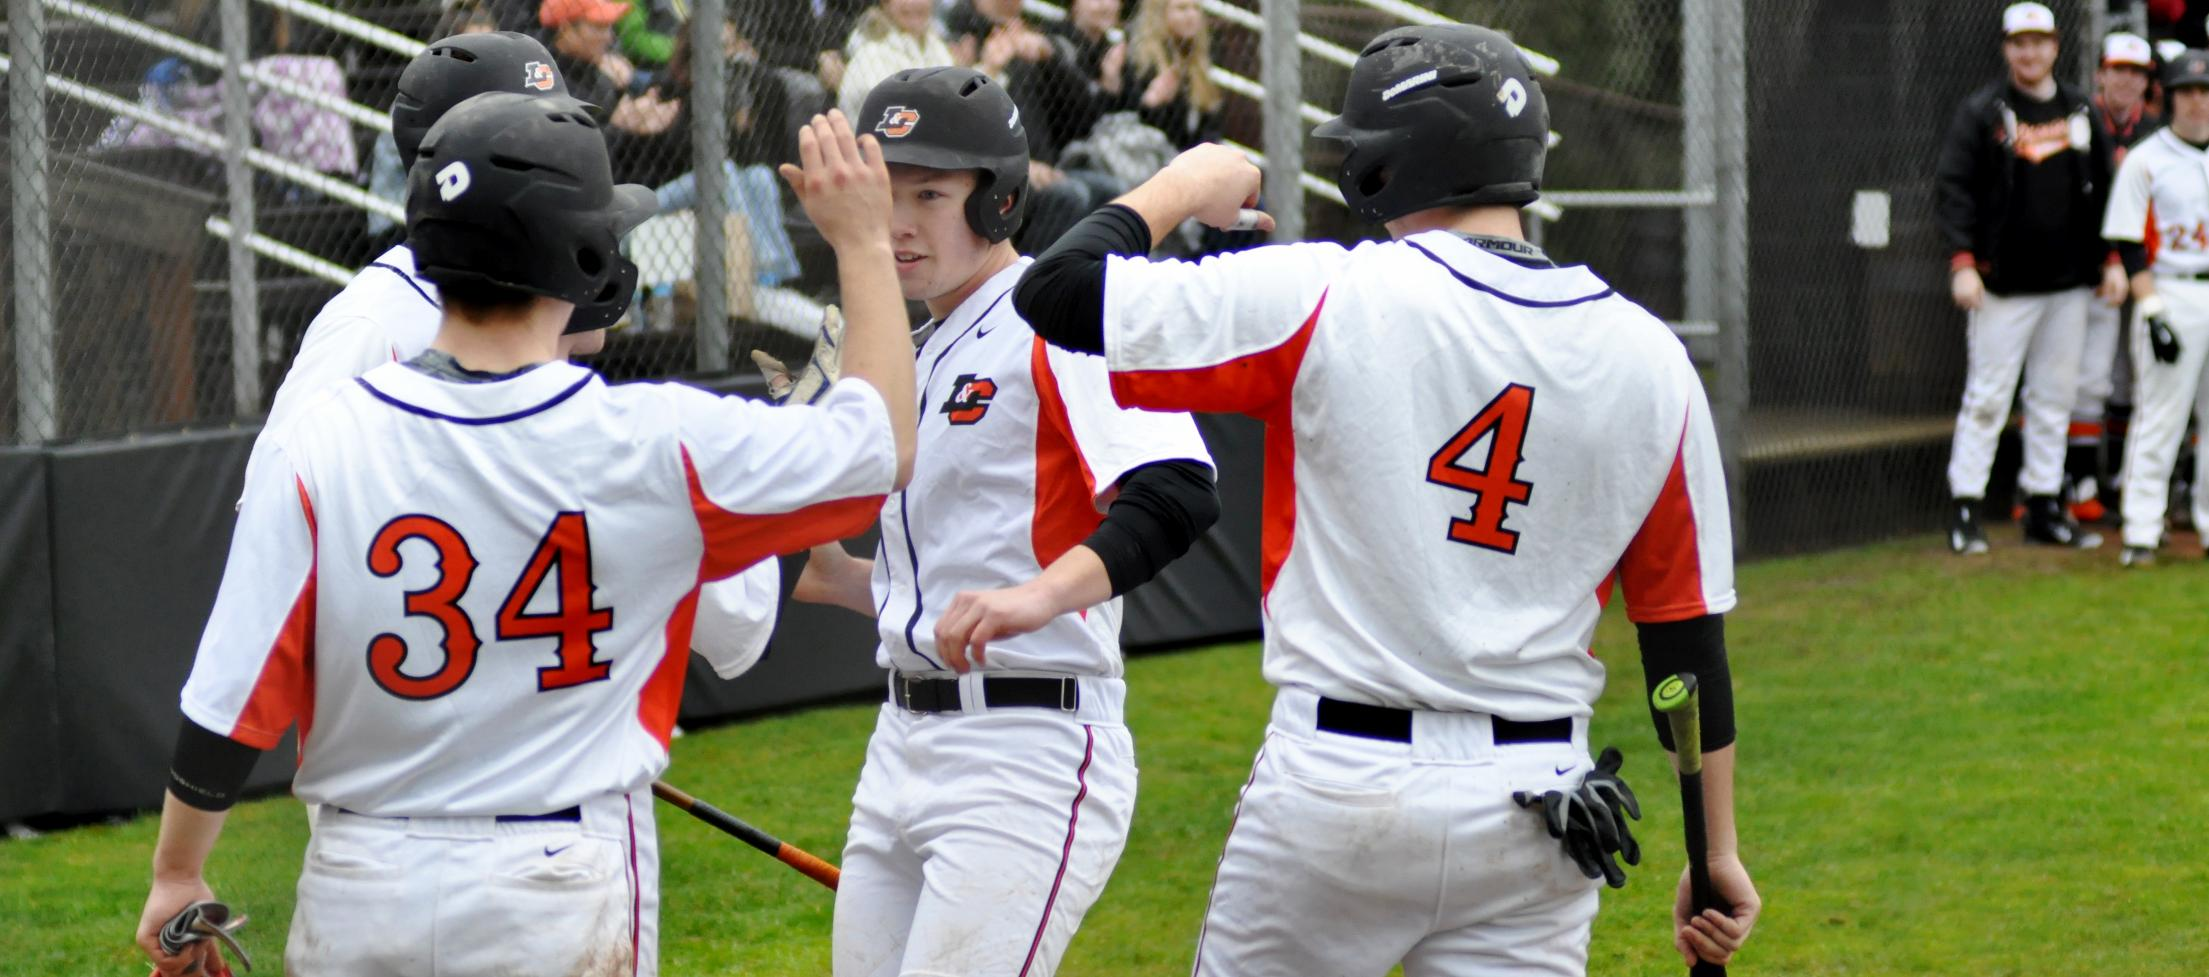 Eggleston's grand slam sets the tone for Lewis & Clark